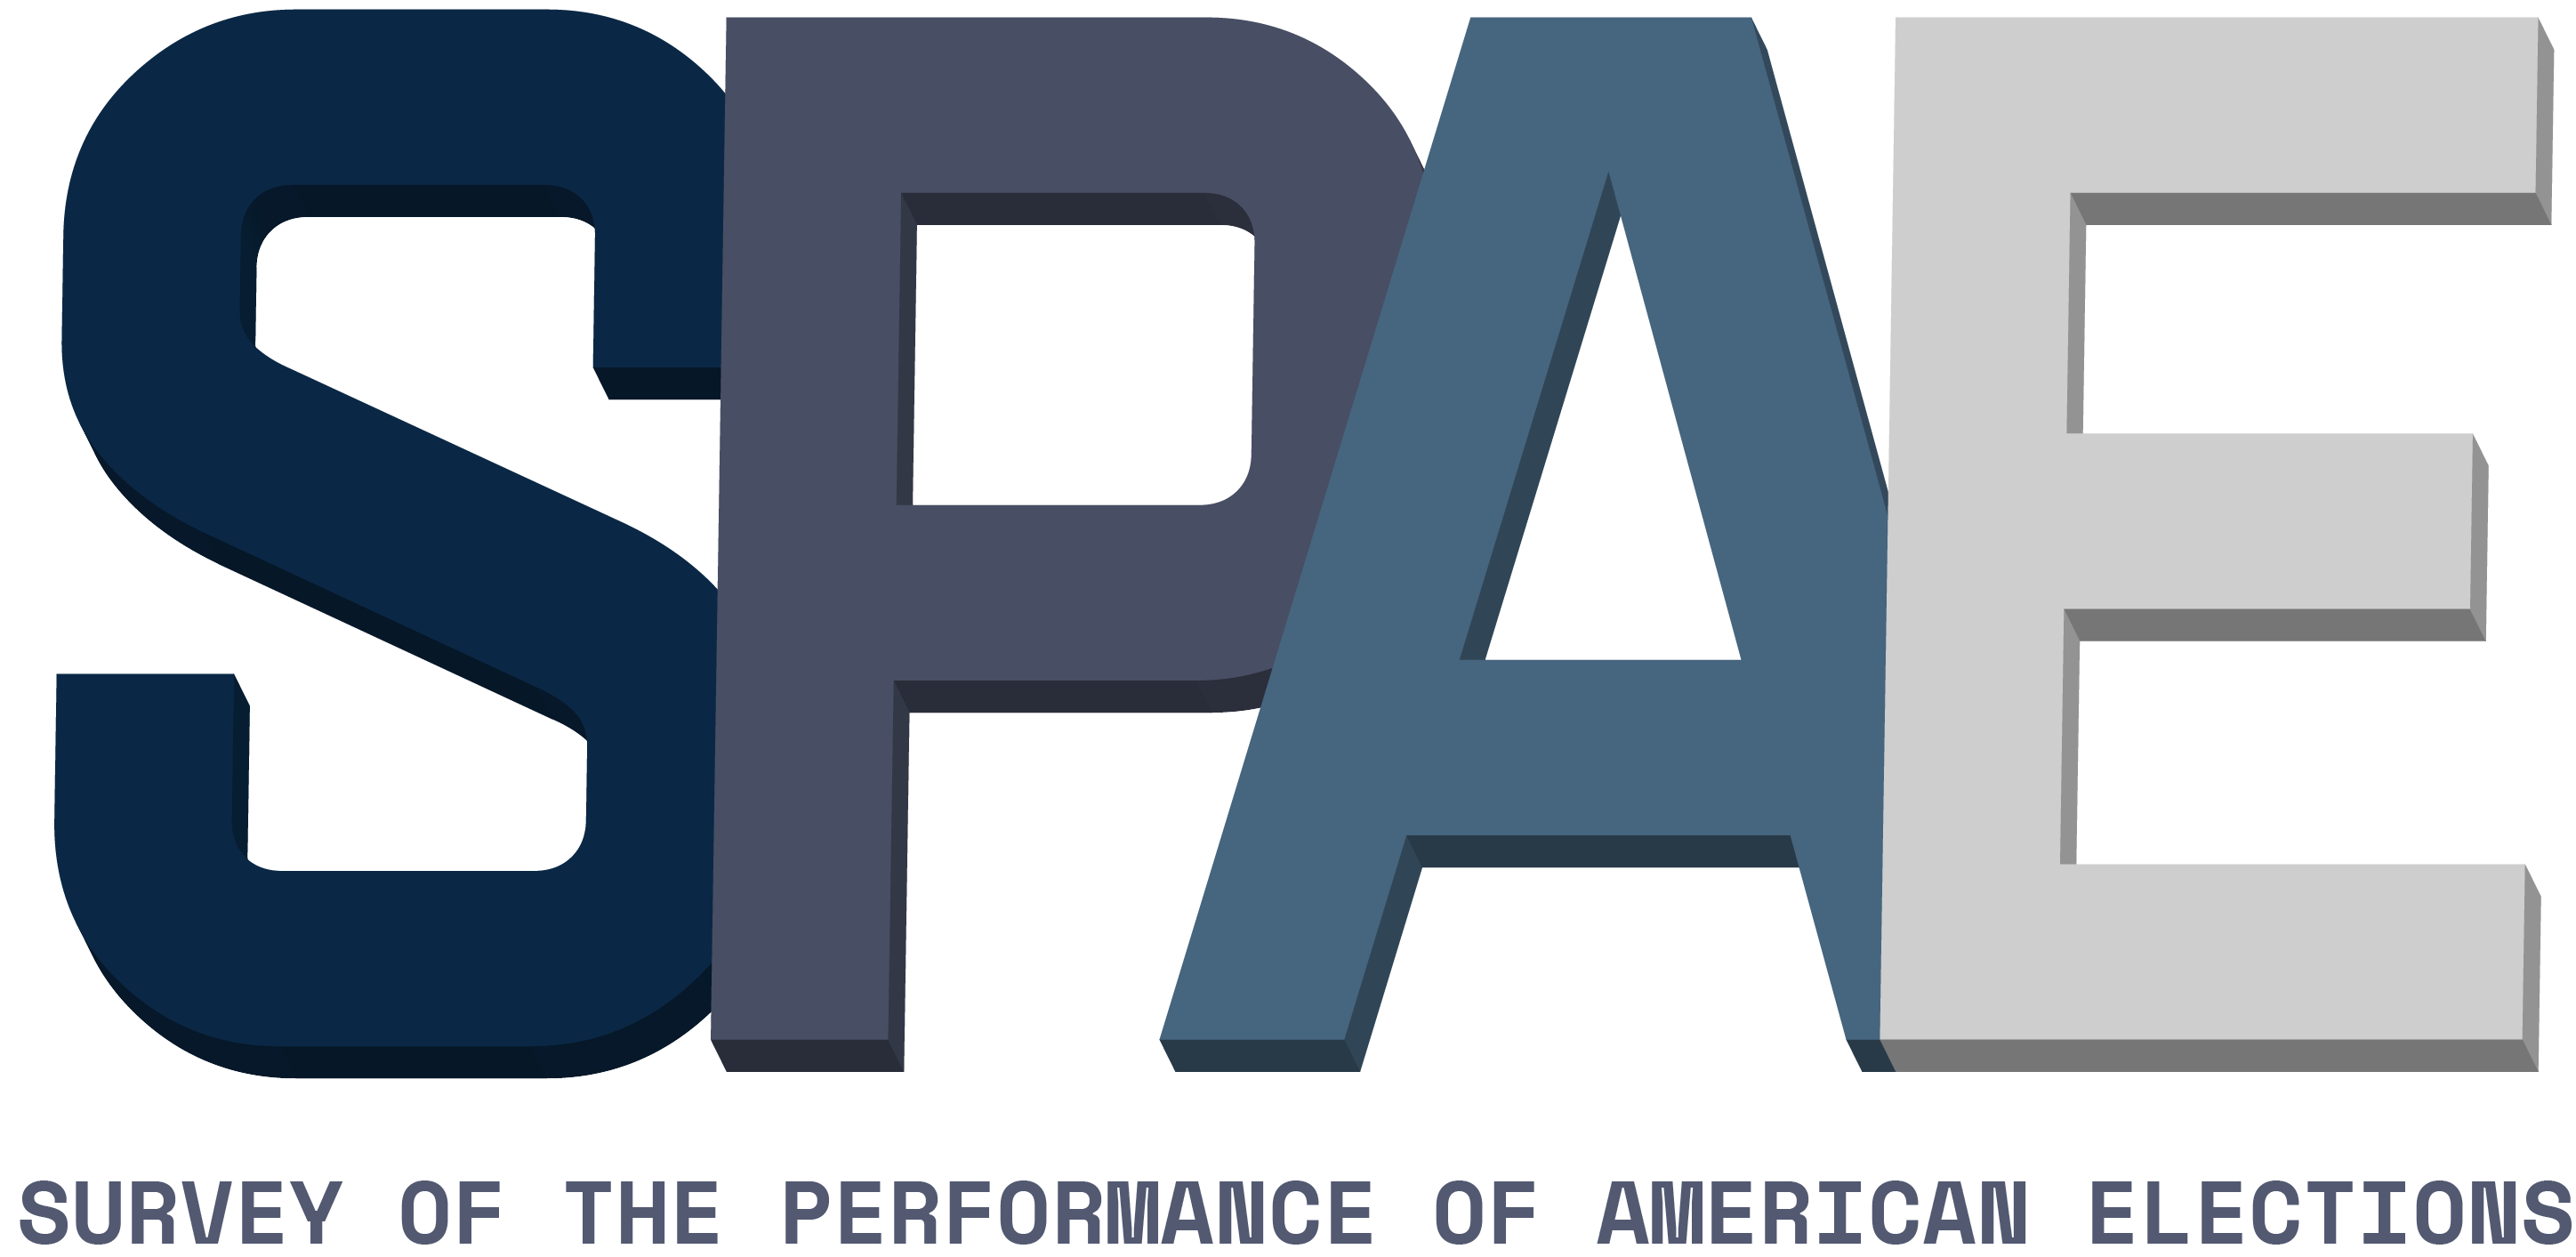 Grey gradient text spells out SPAE in large blocky letters. Below, smaller letters read Survey of the Performance of American Elections.